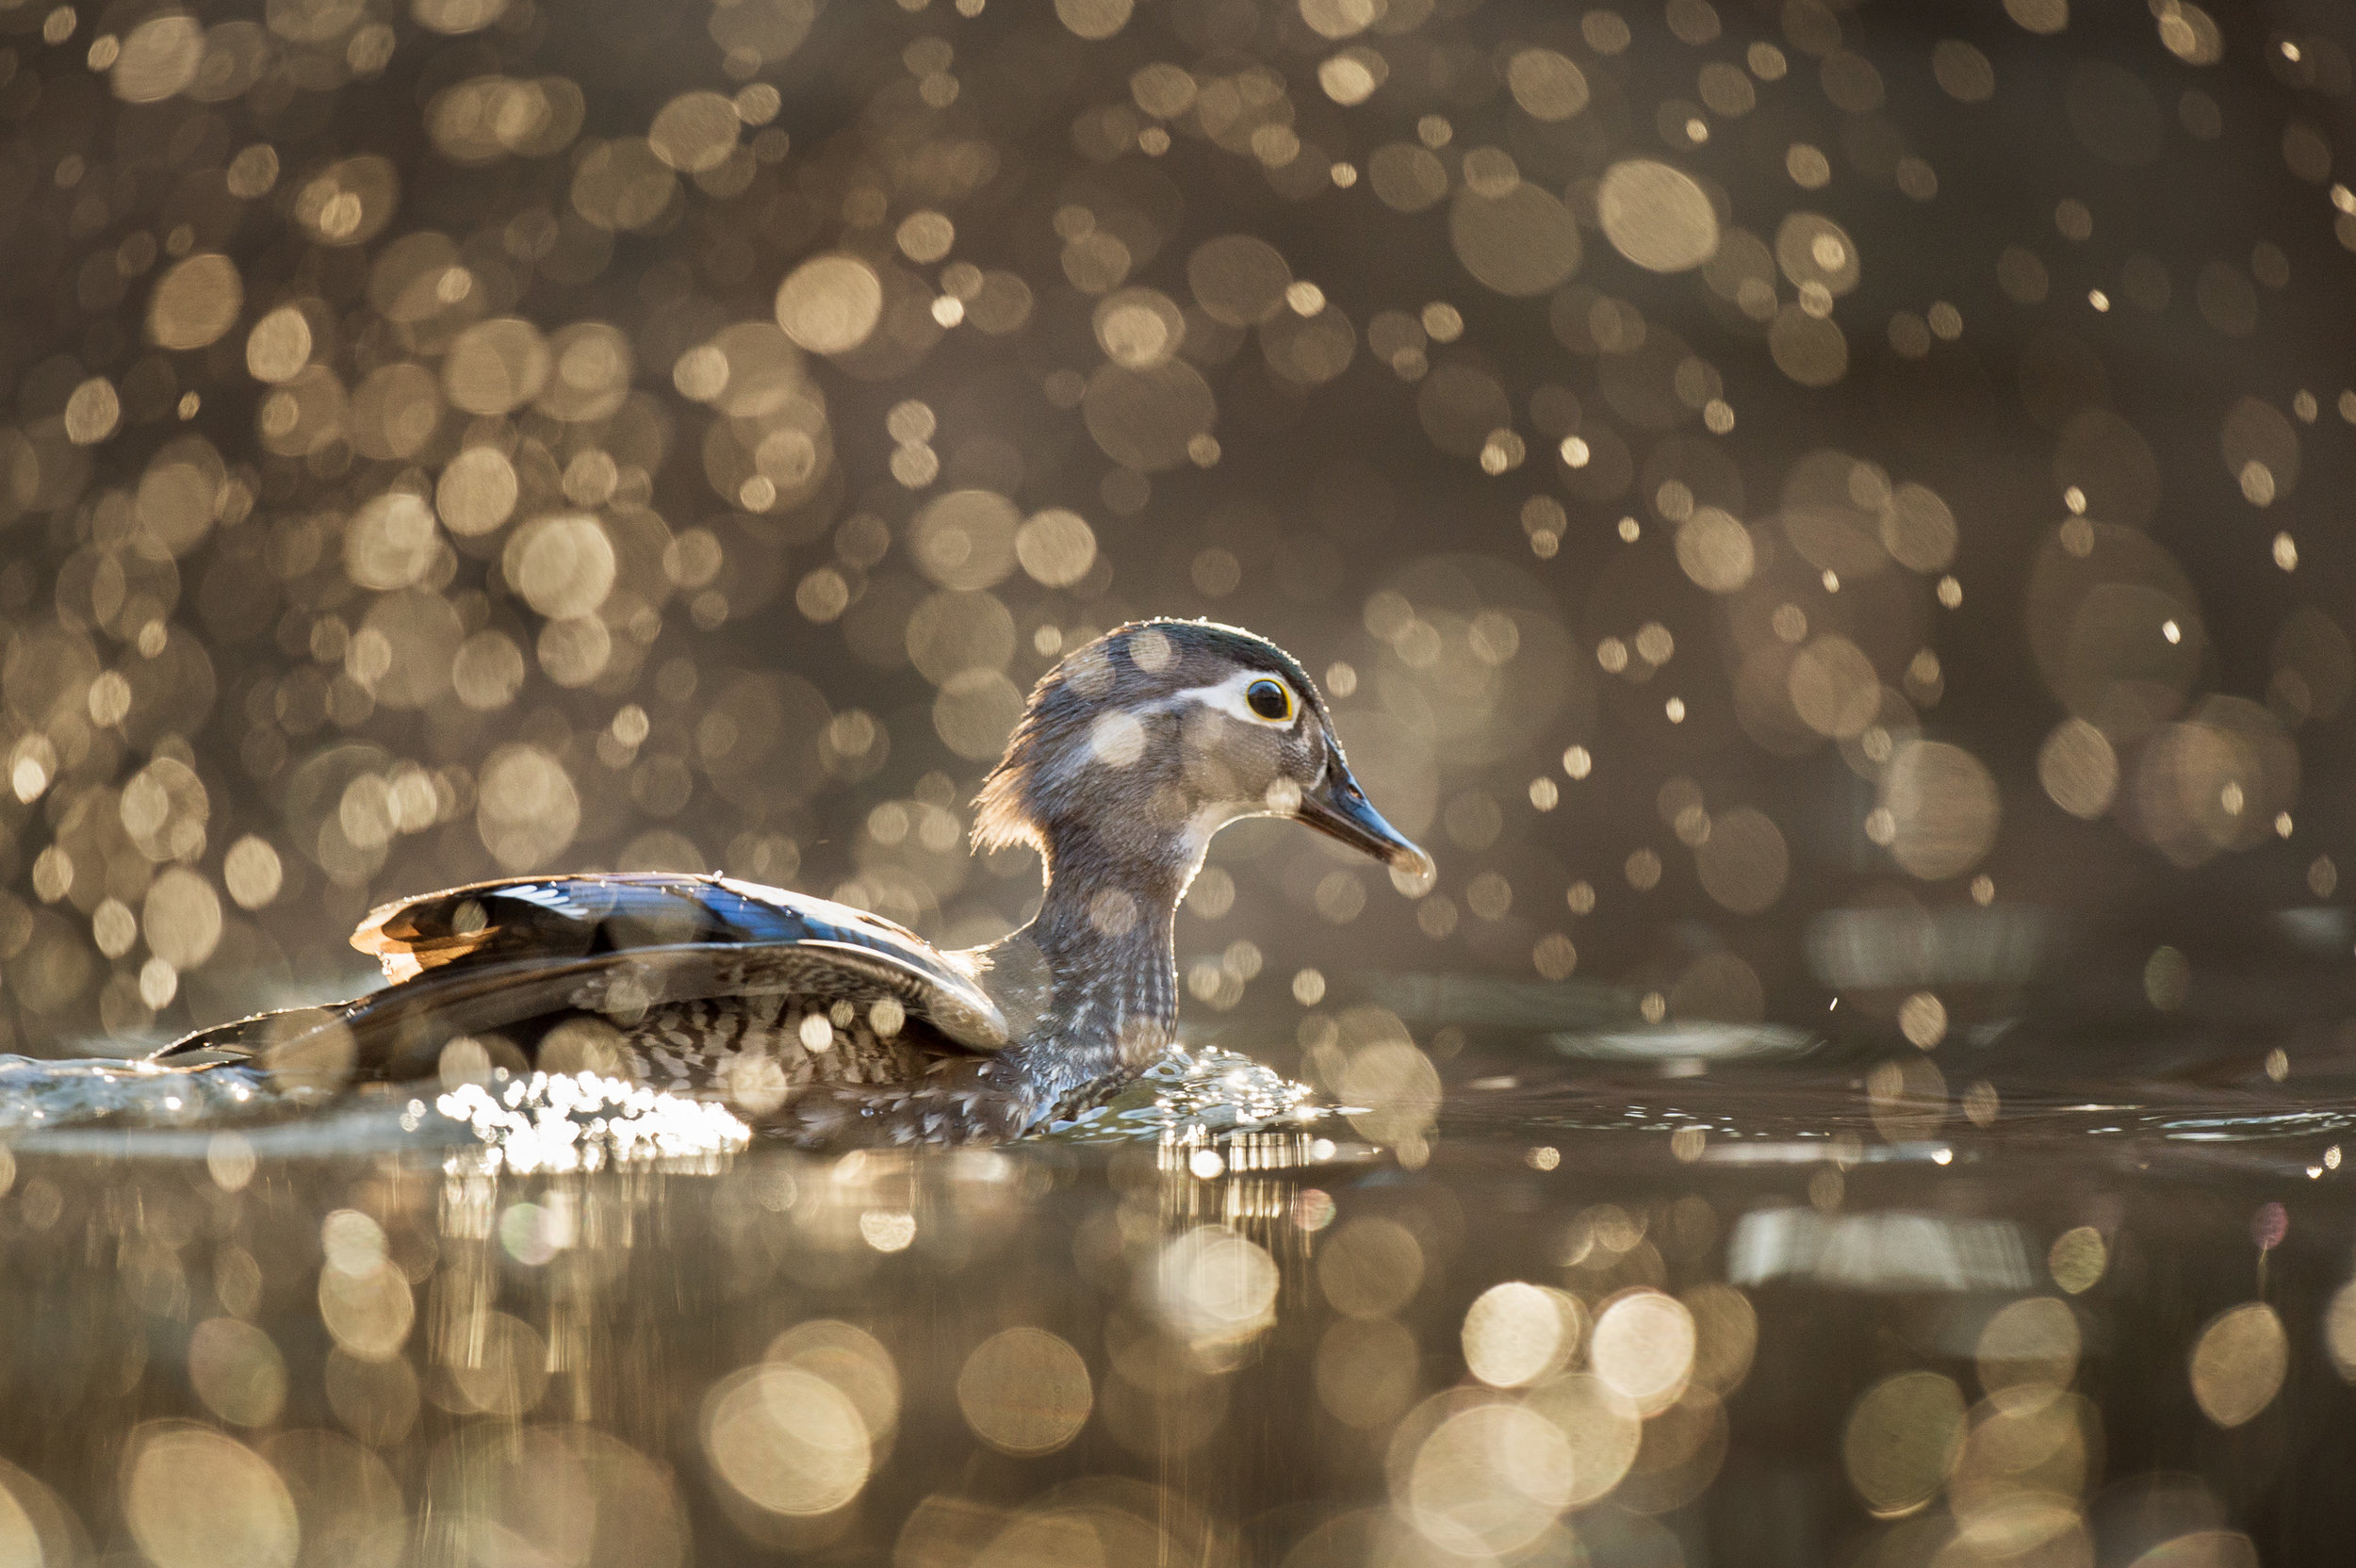 I got incredibly lucky when another duck that was out of the frame decided to dive and splashed up all the water drops in the foreground, which then turned into the glowing sparkles in the air because I was set up for backlight on this Wood Duck hen.